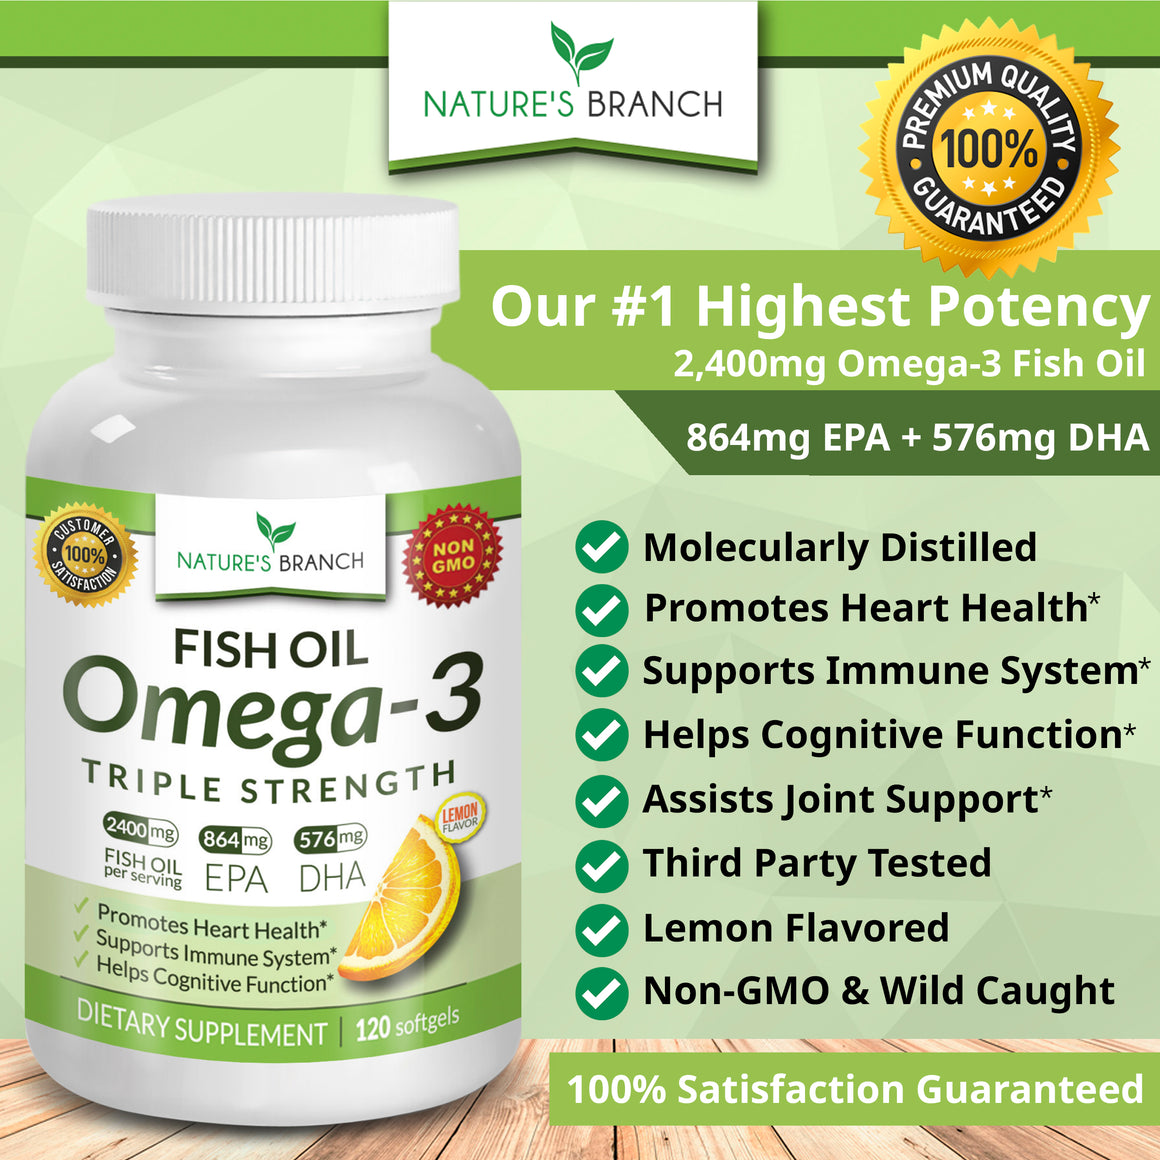 TRIPLE STRENGTH Omega 3 Fish Oil 2500mg (Highest Potency EPA + DHA)